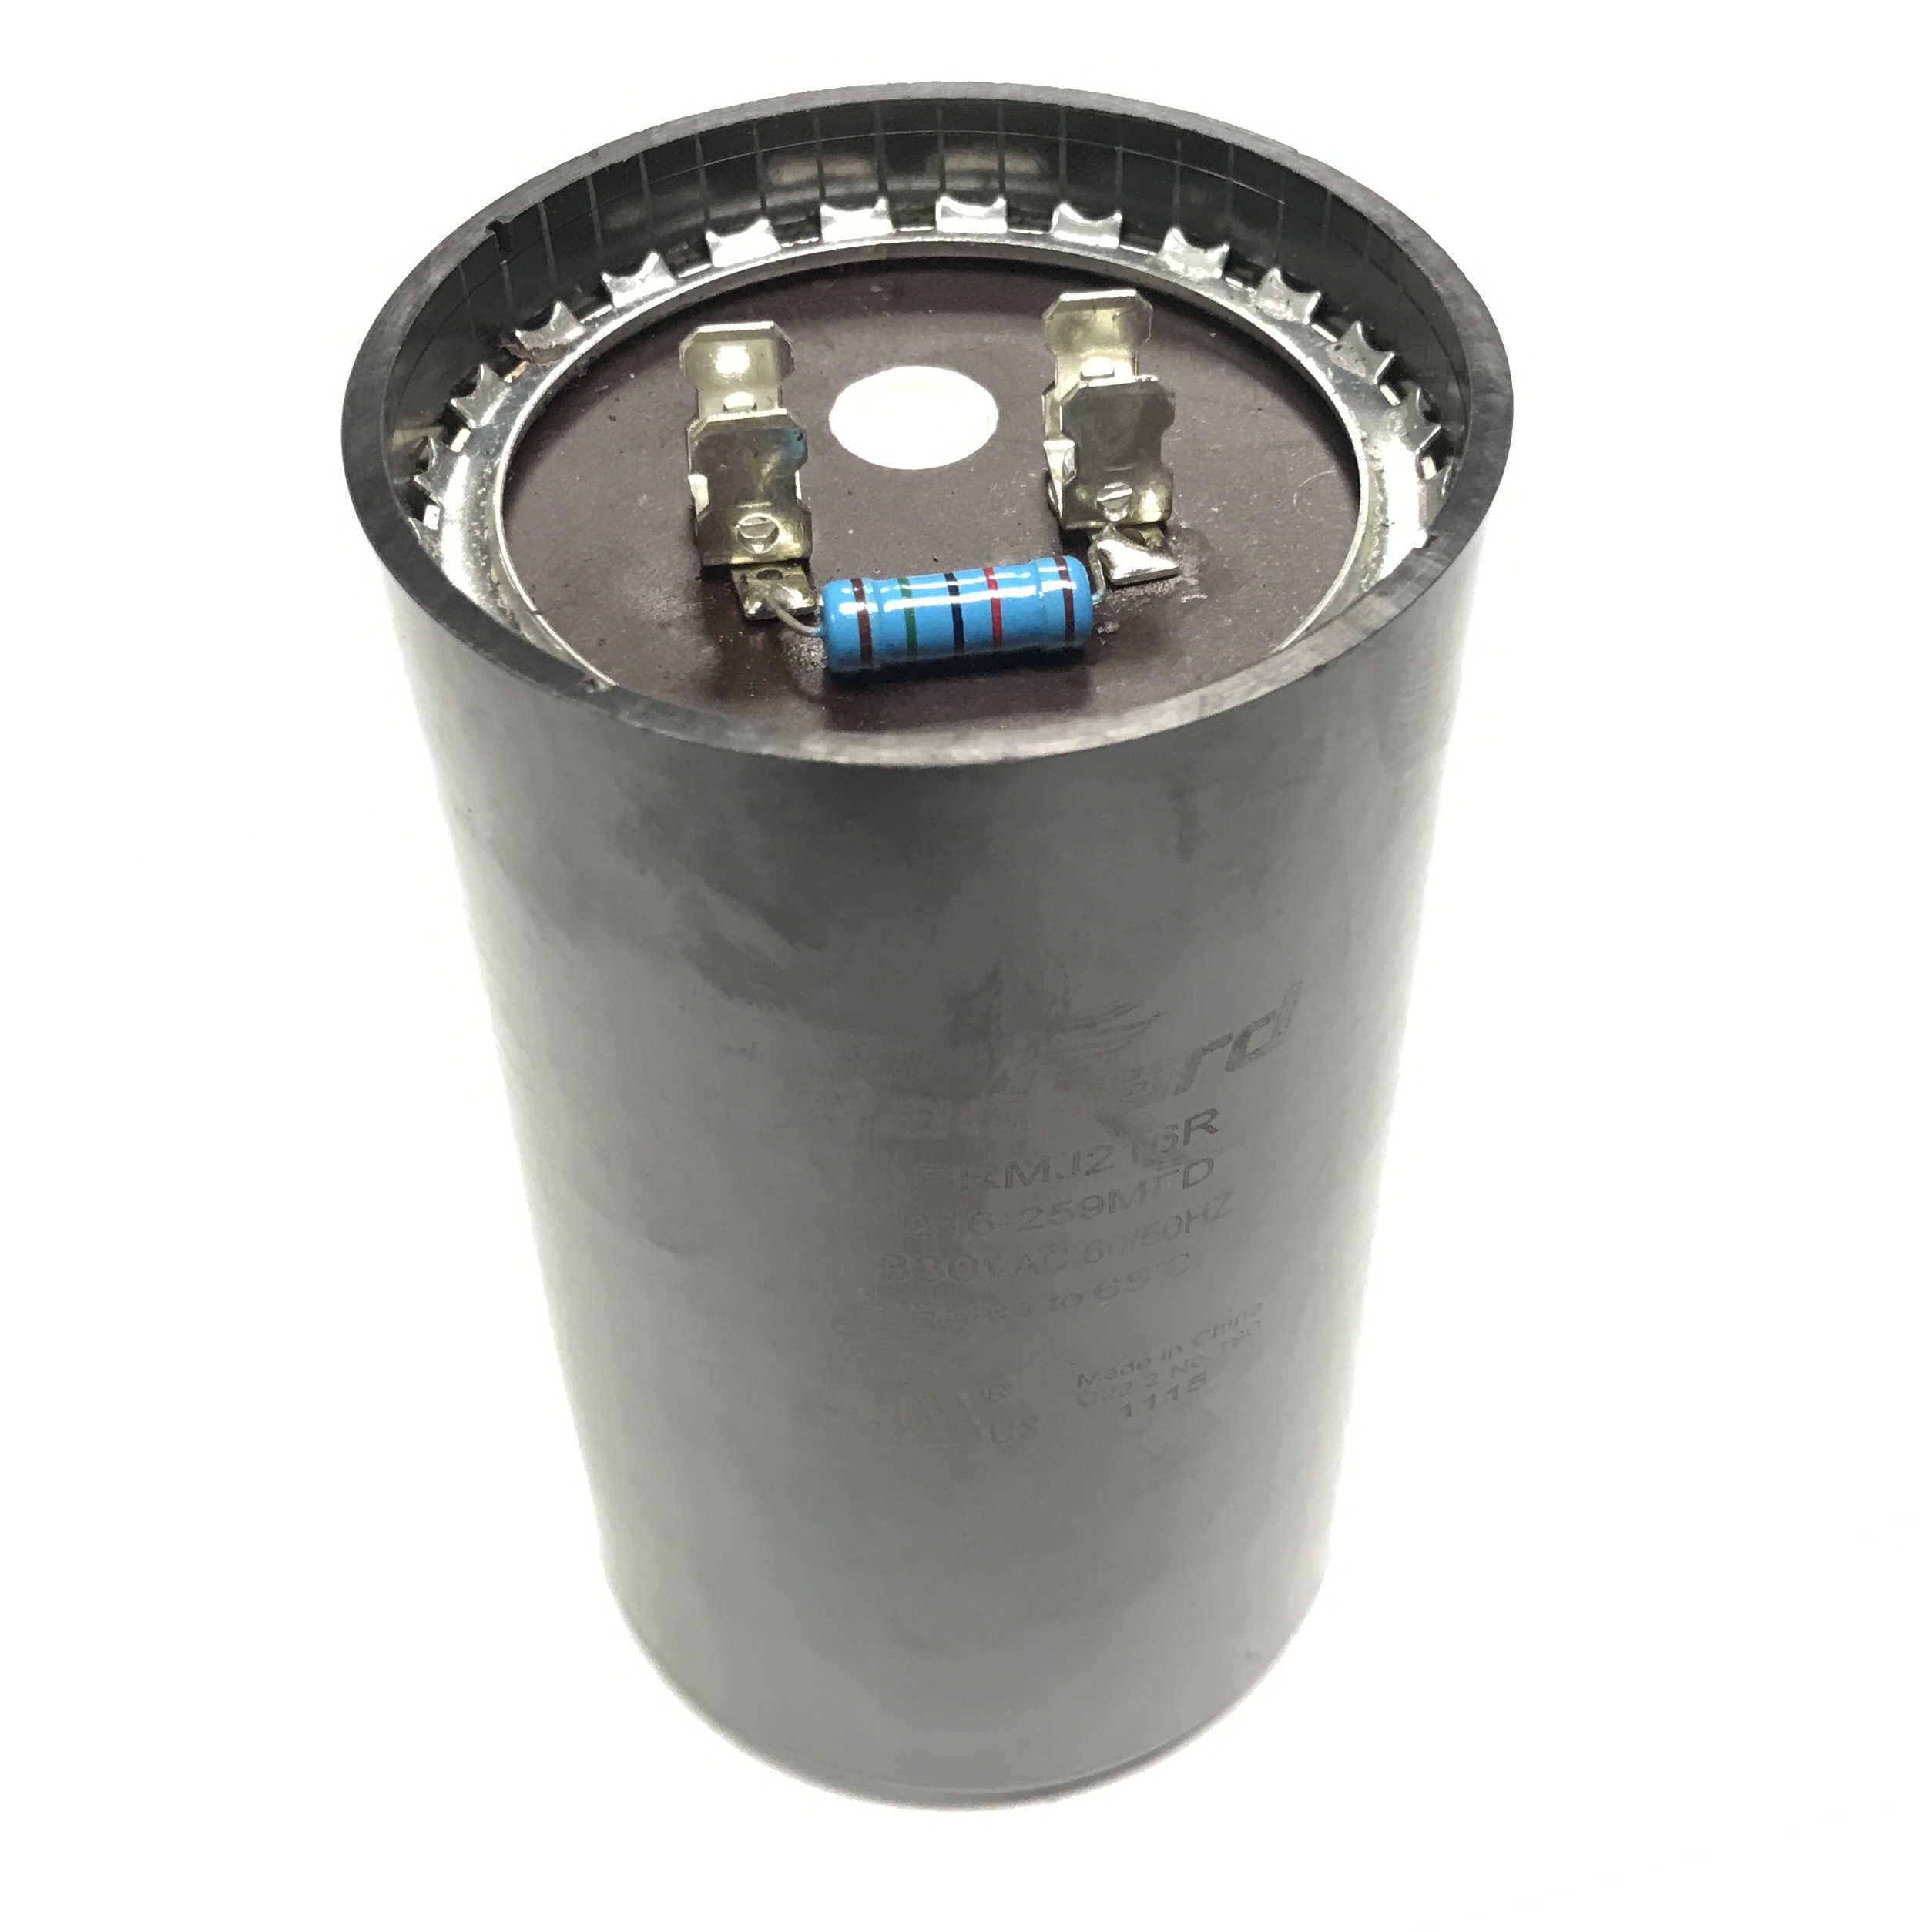 PRMJ216R Packard Start Capacitor, Mfd 216-259 uF